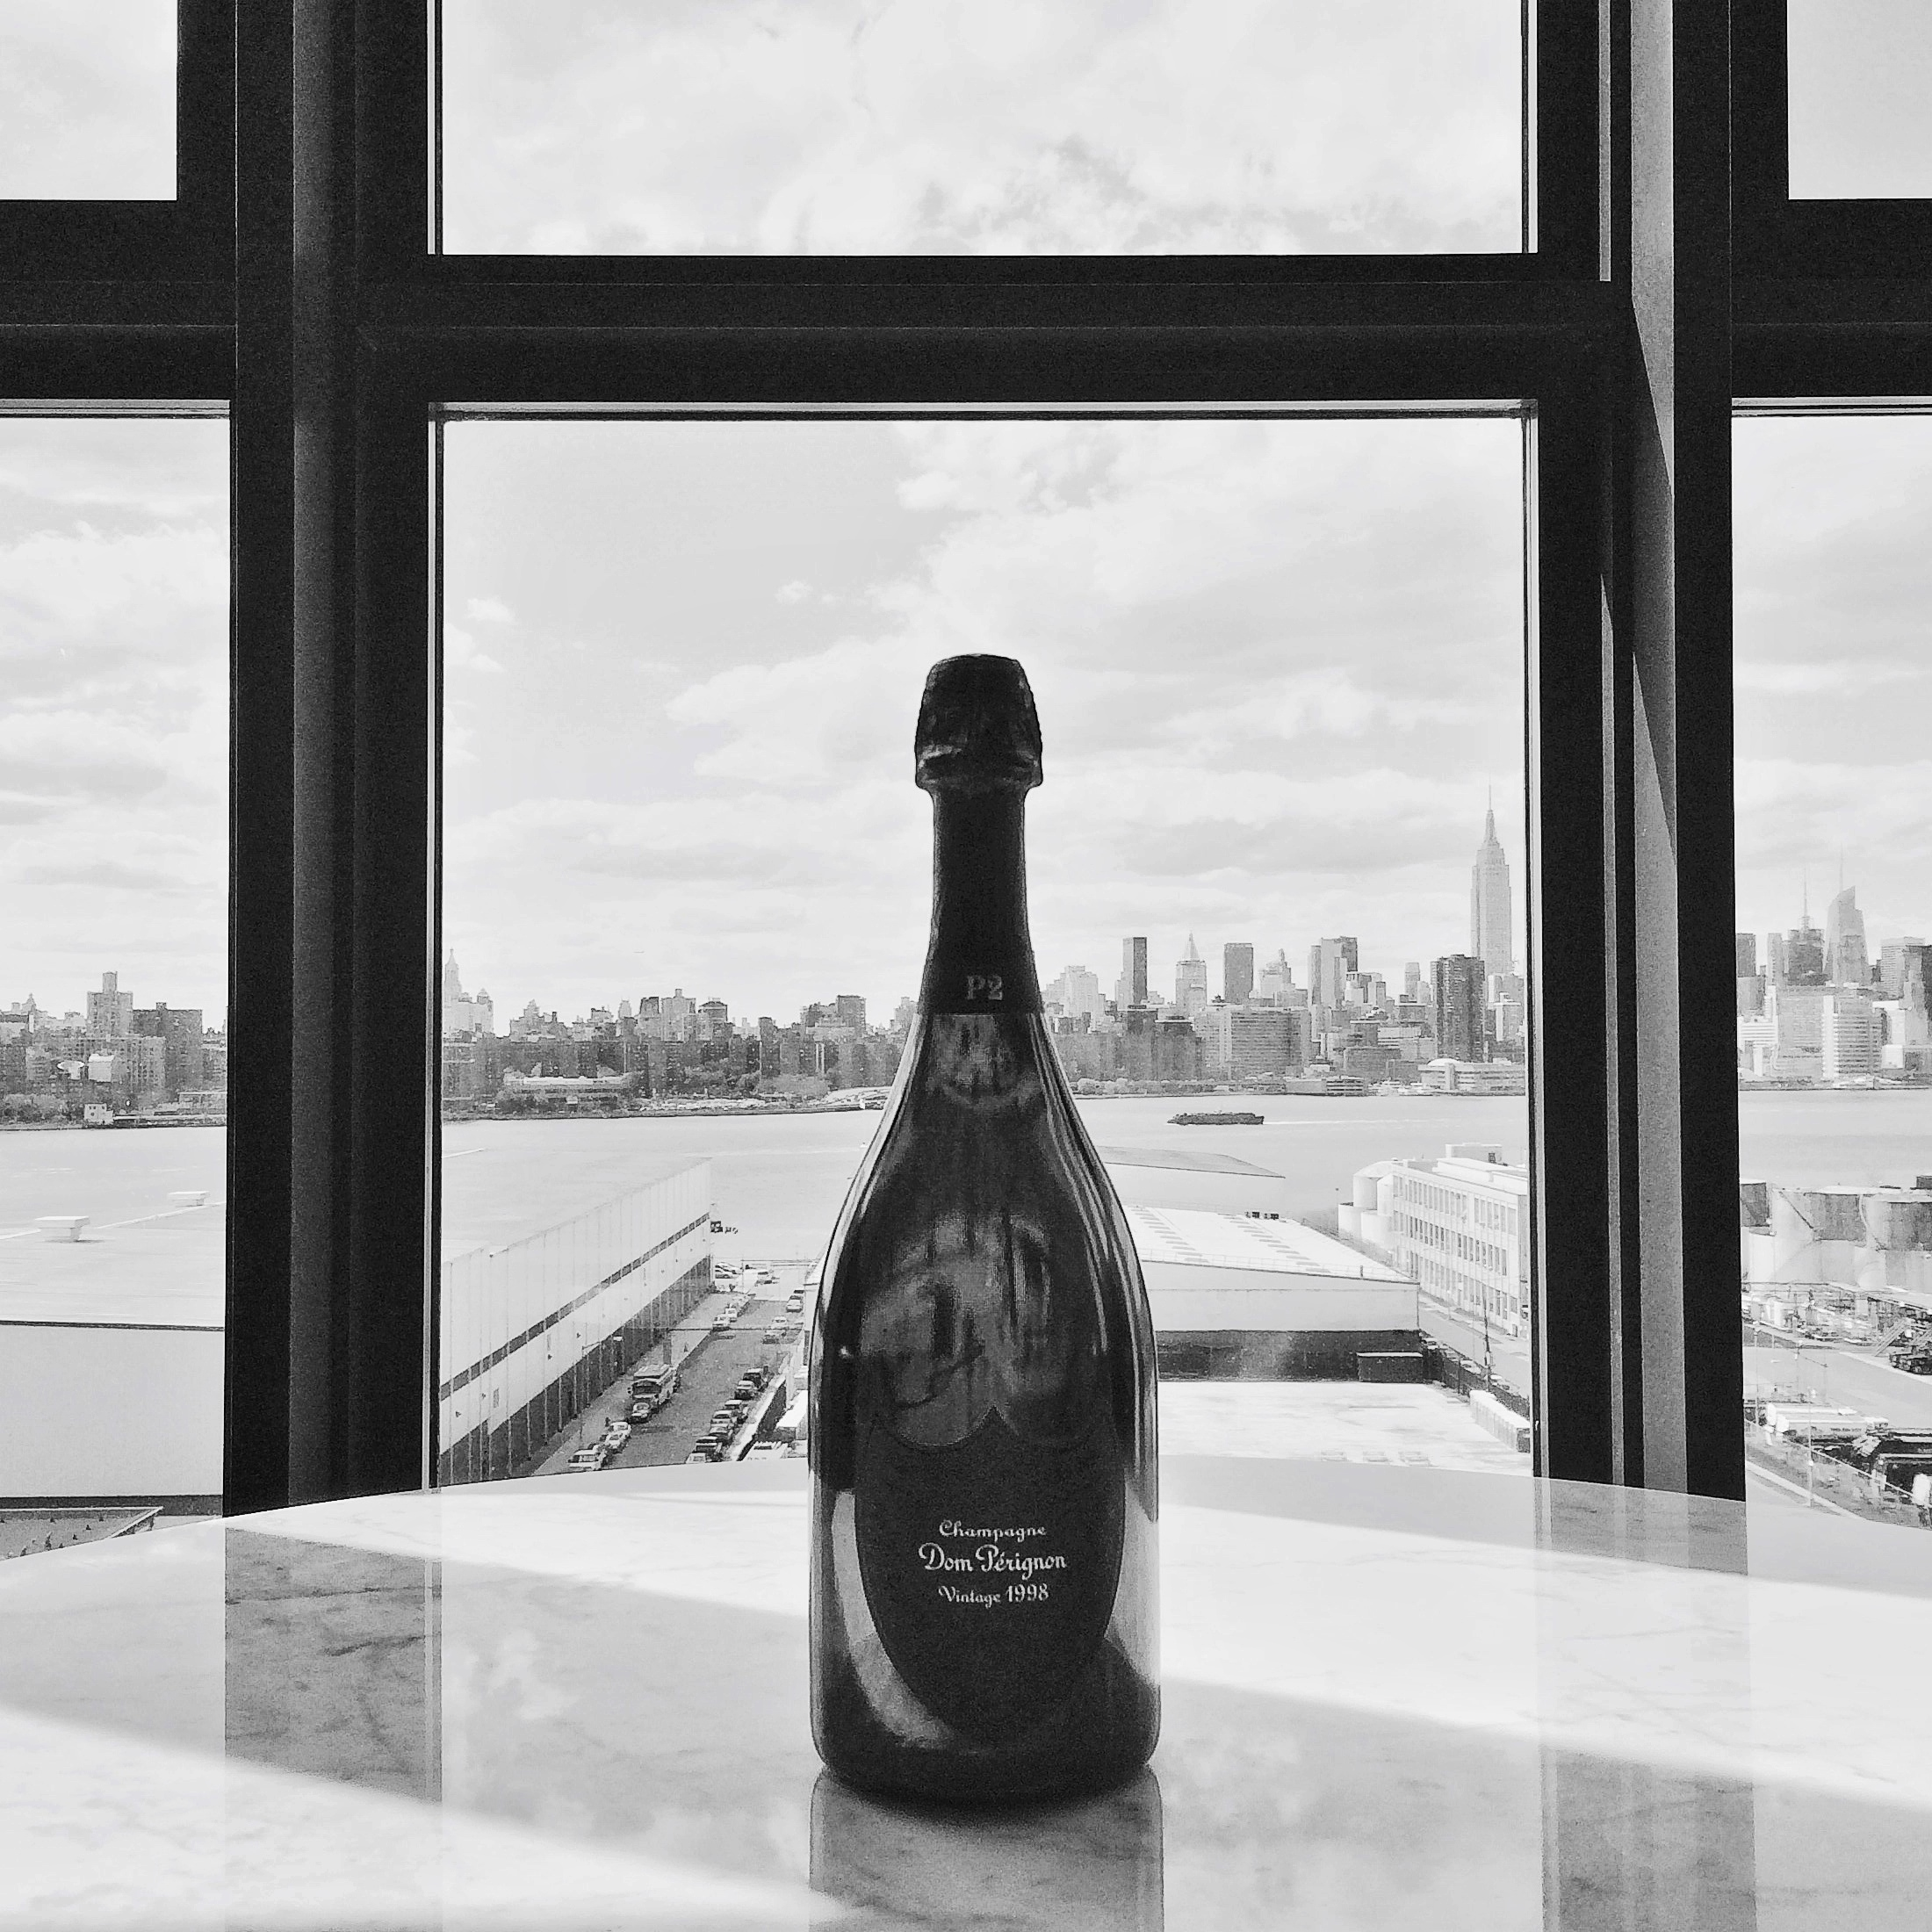 Dom Pérignon P2 owes its intensity to its precision, paradoxically balancing yet embracing, chiselling without breaking, barely touching without ever hitting hard. Like any high-tech creation, it reveals itself in high-definition. The momentum of Dom Pérignon P2 is even stronger in its dark, understated and powerful aesthetic. Its tone-on-tone bottle and minimalist brushed aluminium box, in a deep matte, seem almost to be locked to temporarily subdue the wine's energy.    Dom Pérignon P2 is the reward for this sharp mastery of wine. It deploys a vibrato universe of an exceptional air density. Tasting the wine is a memorable experience, abundant in intense and penetrating sensations and vividly fresh emotions.    A new luxury of uniqueness appears. It takes on the energy of total experiences, the disorientation of unexpected sensations, the perfection of bold gestures, the pulsation of once-in-a-lifetime occurrences. Dom Pérignon P2 is part of this elegant matrix – that of the avant-garde.     Want to discover more detail ? Please visit:   http://www.domperignon.com/P2/